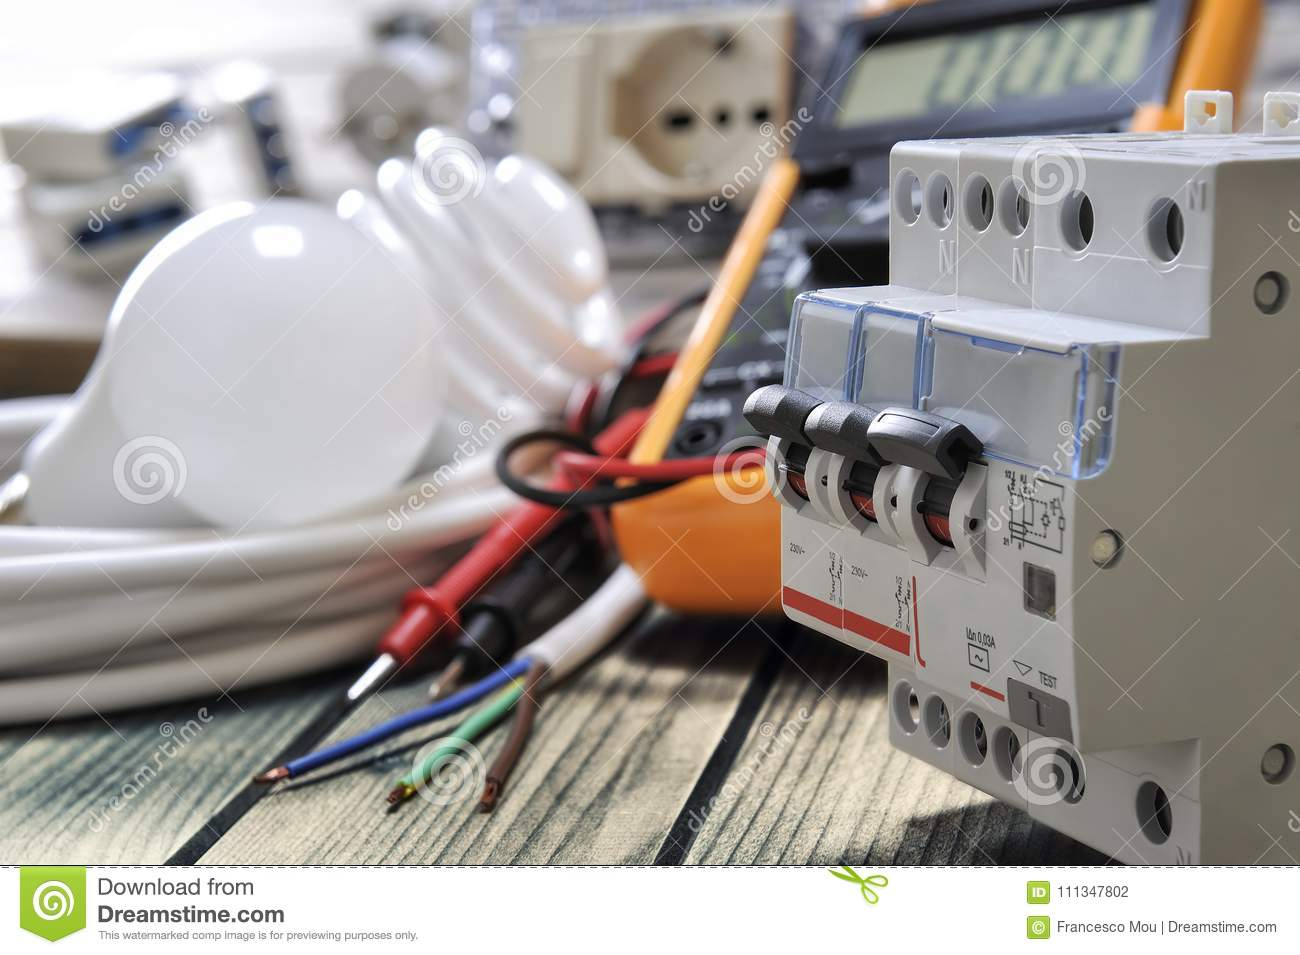 close up of electrical components and equipment on aged wooden rh dreamstime com Complete Electrical Circuit Basic Electrical Circuits